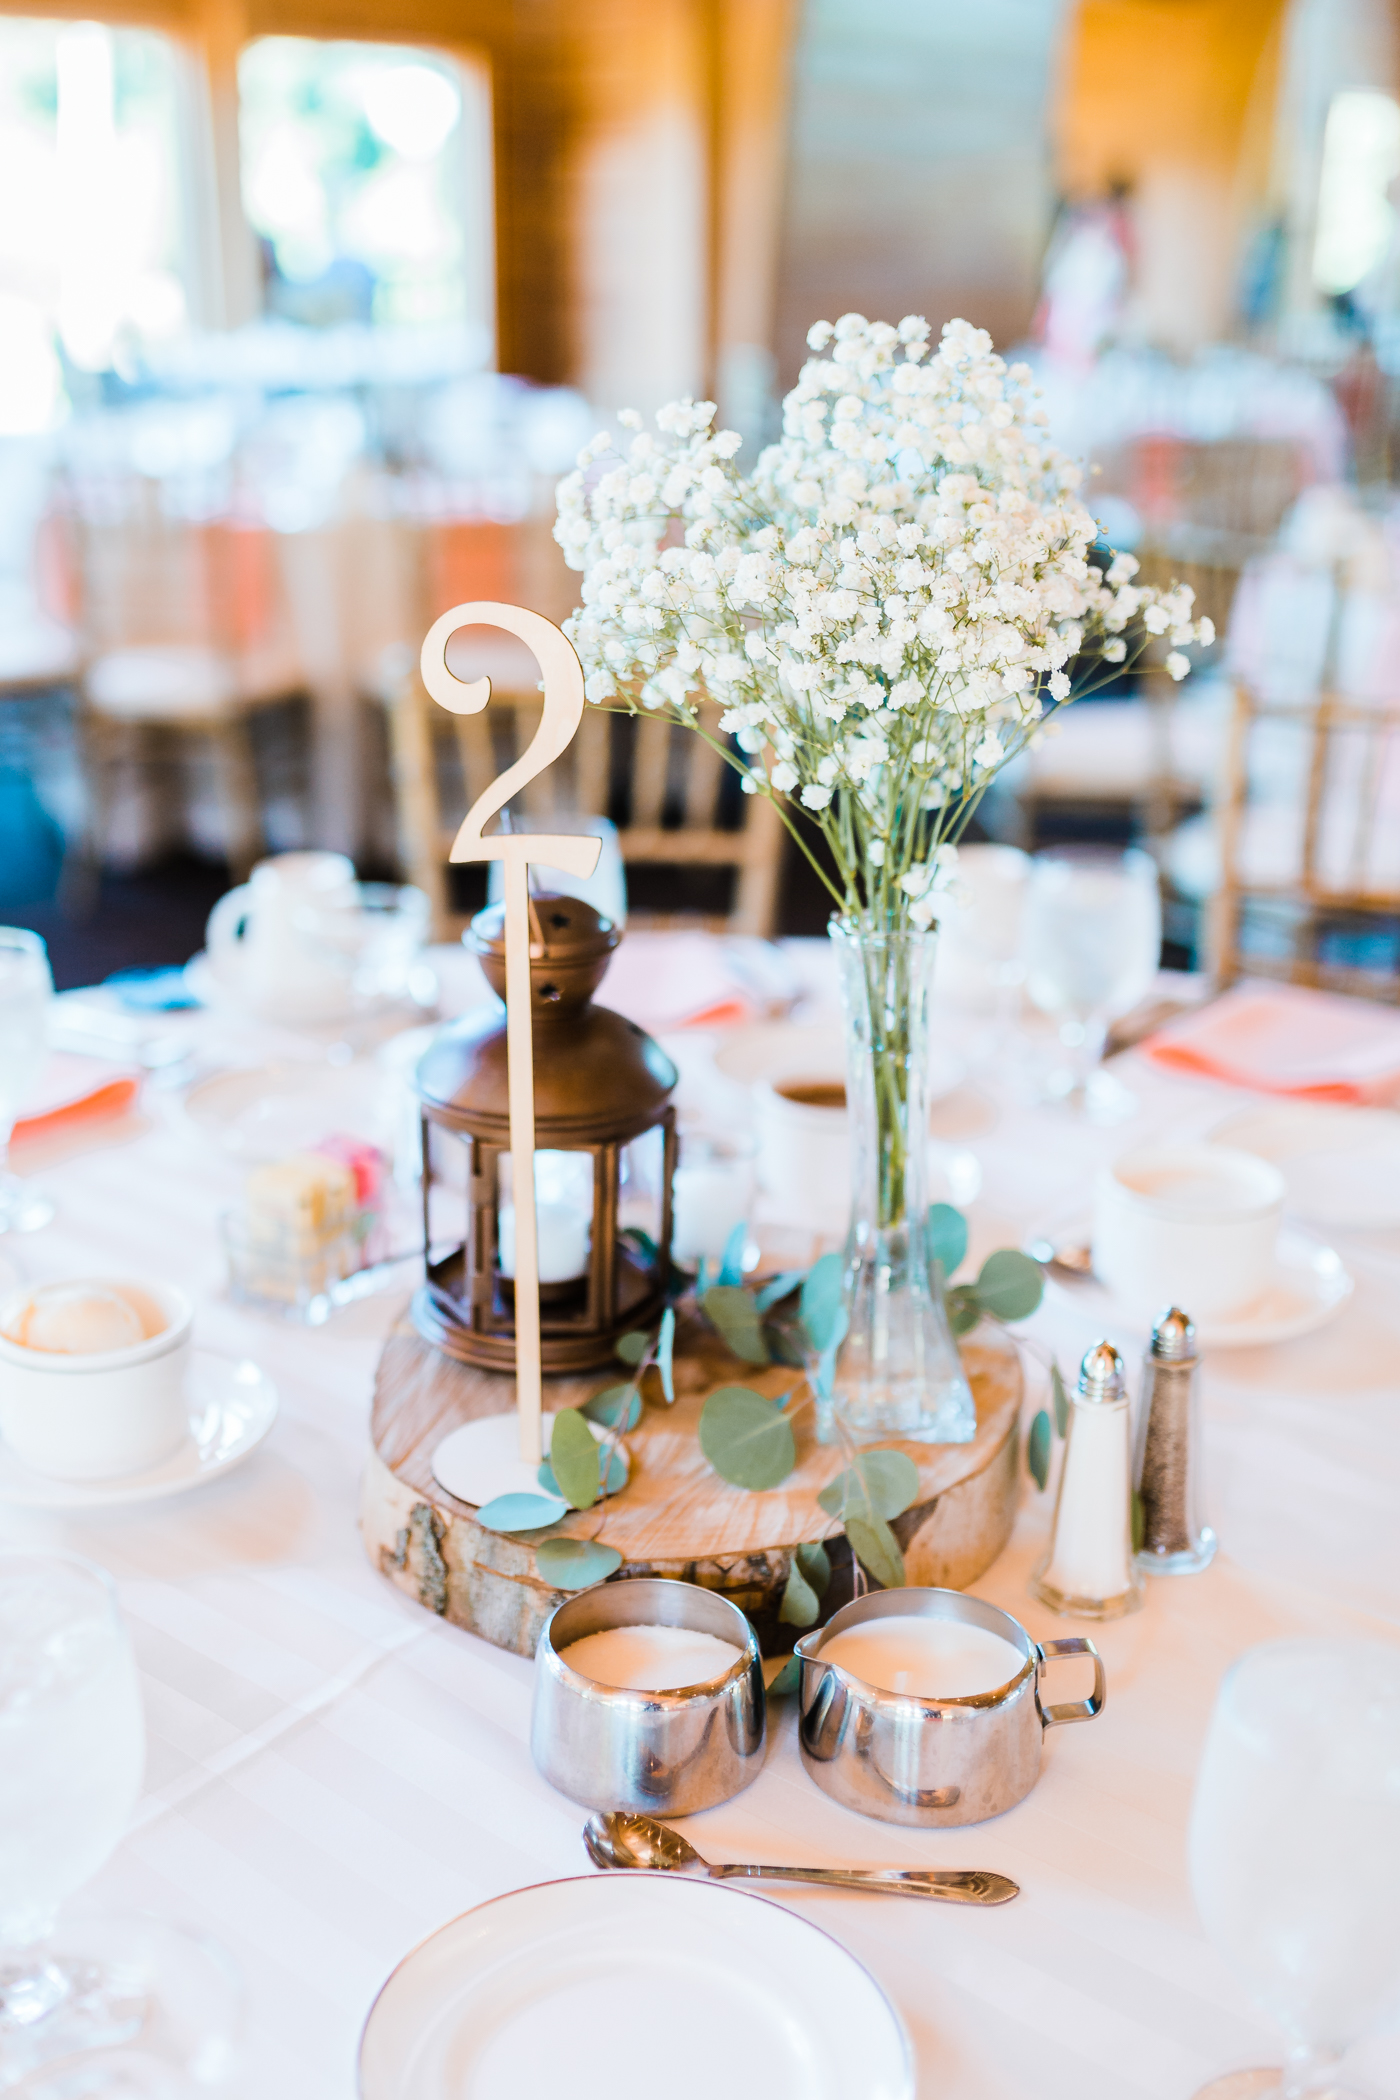 simple rustic centerpieces - reception details - wood slices